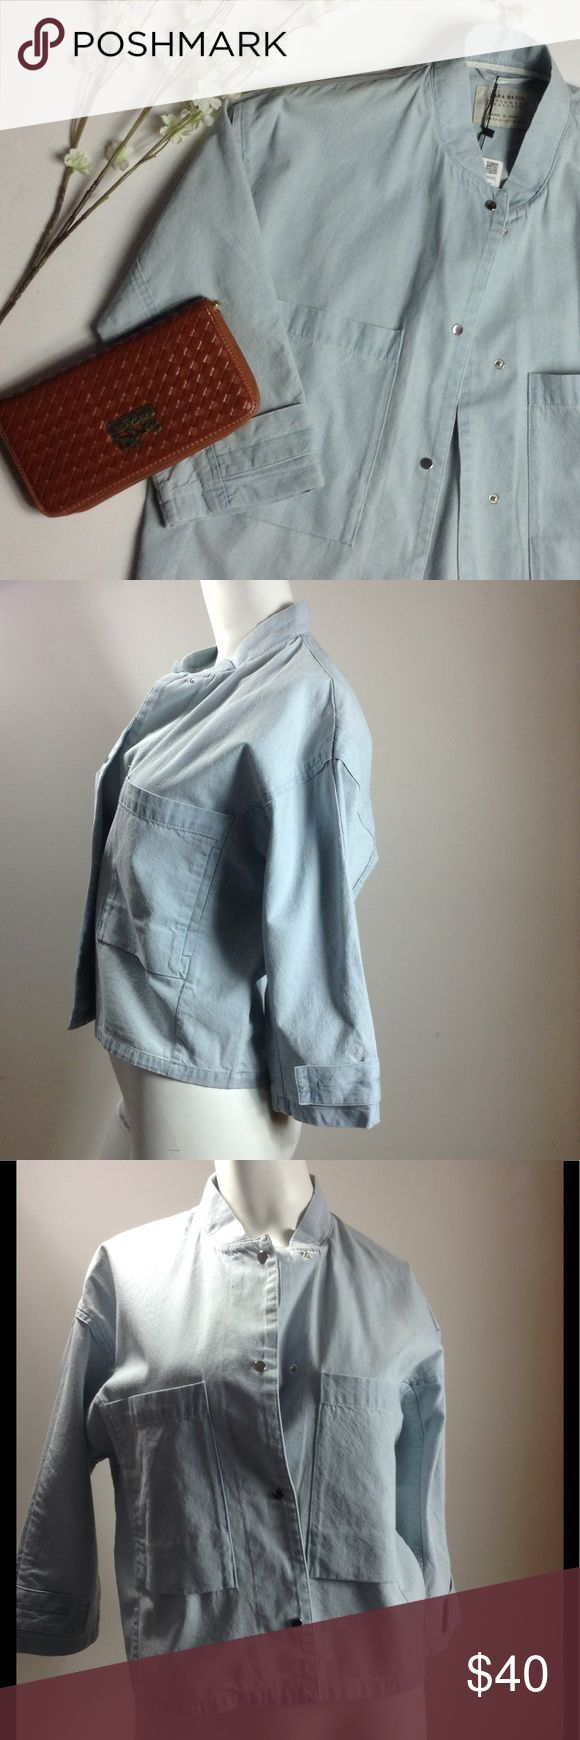 """🆕 Zara 💠 Jacket Zara 💠 Jacket, NWT, Polyester and Cotton Fabric, Snap Up Front Closure, Chest 44"""", Length 21"""", Light Blue Denim Appearance 💠💠💠 accepting reasonable offers Zara Jackets & Coats Jean Jackets"""